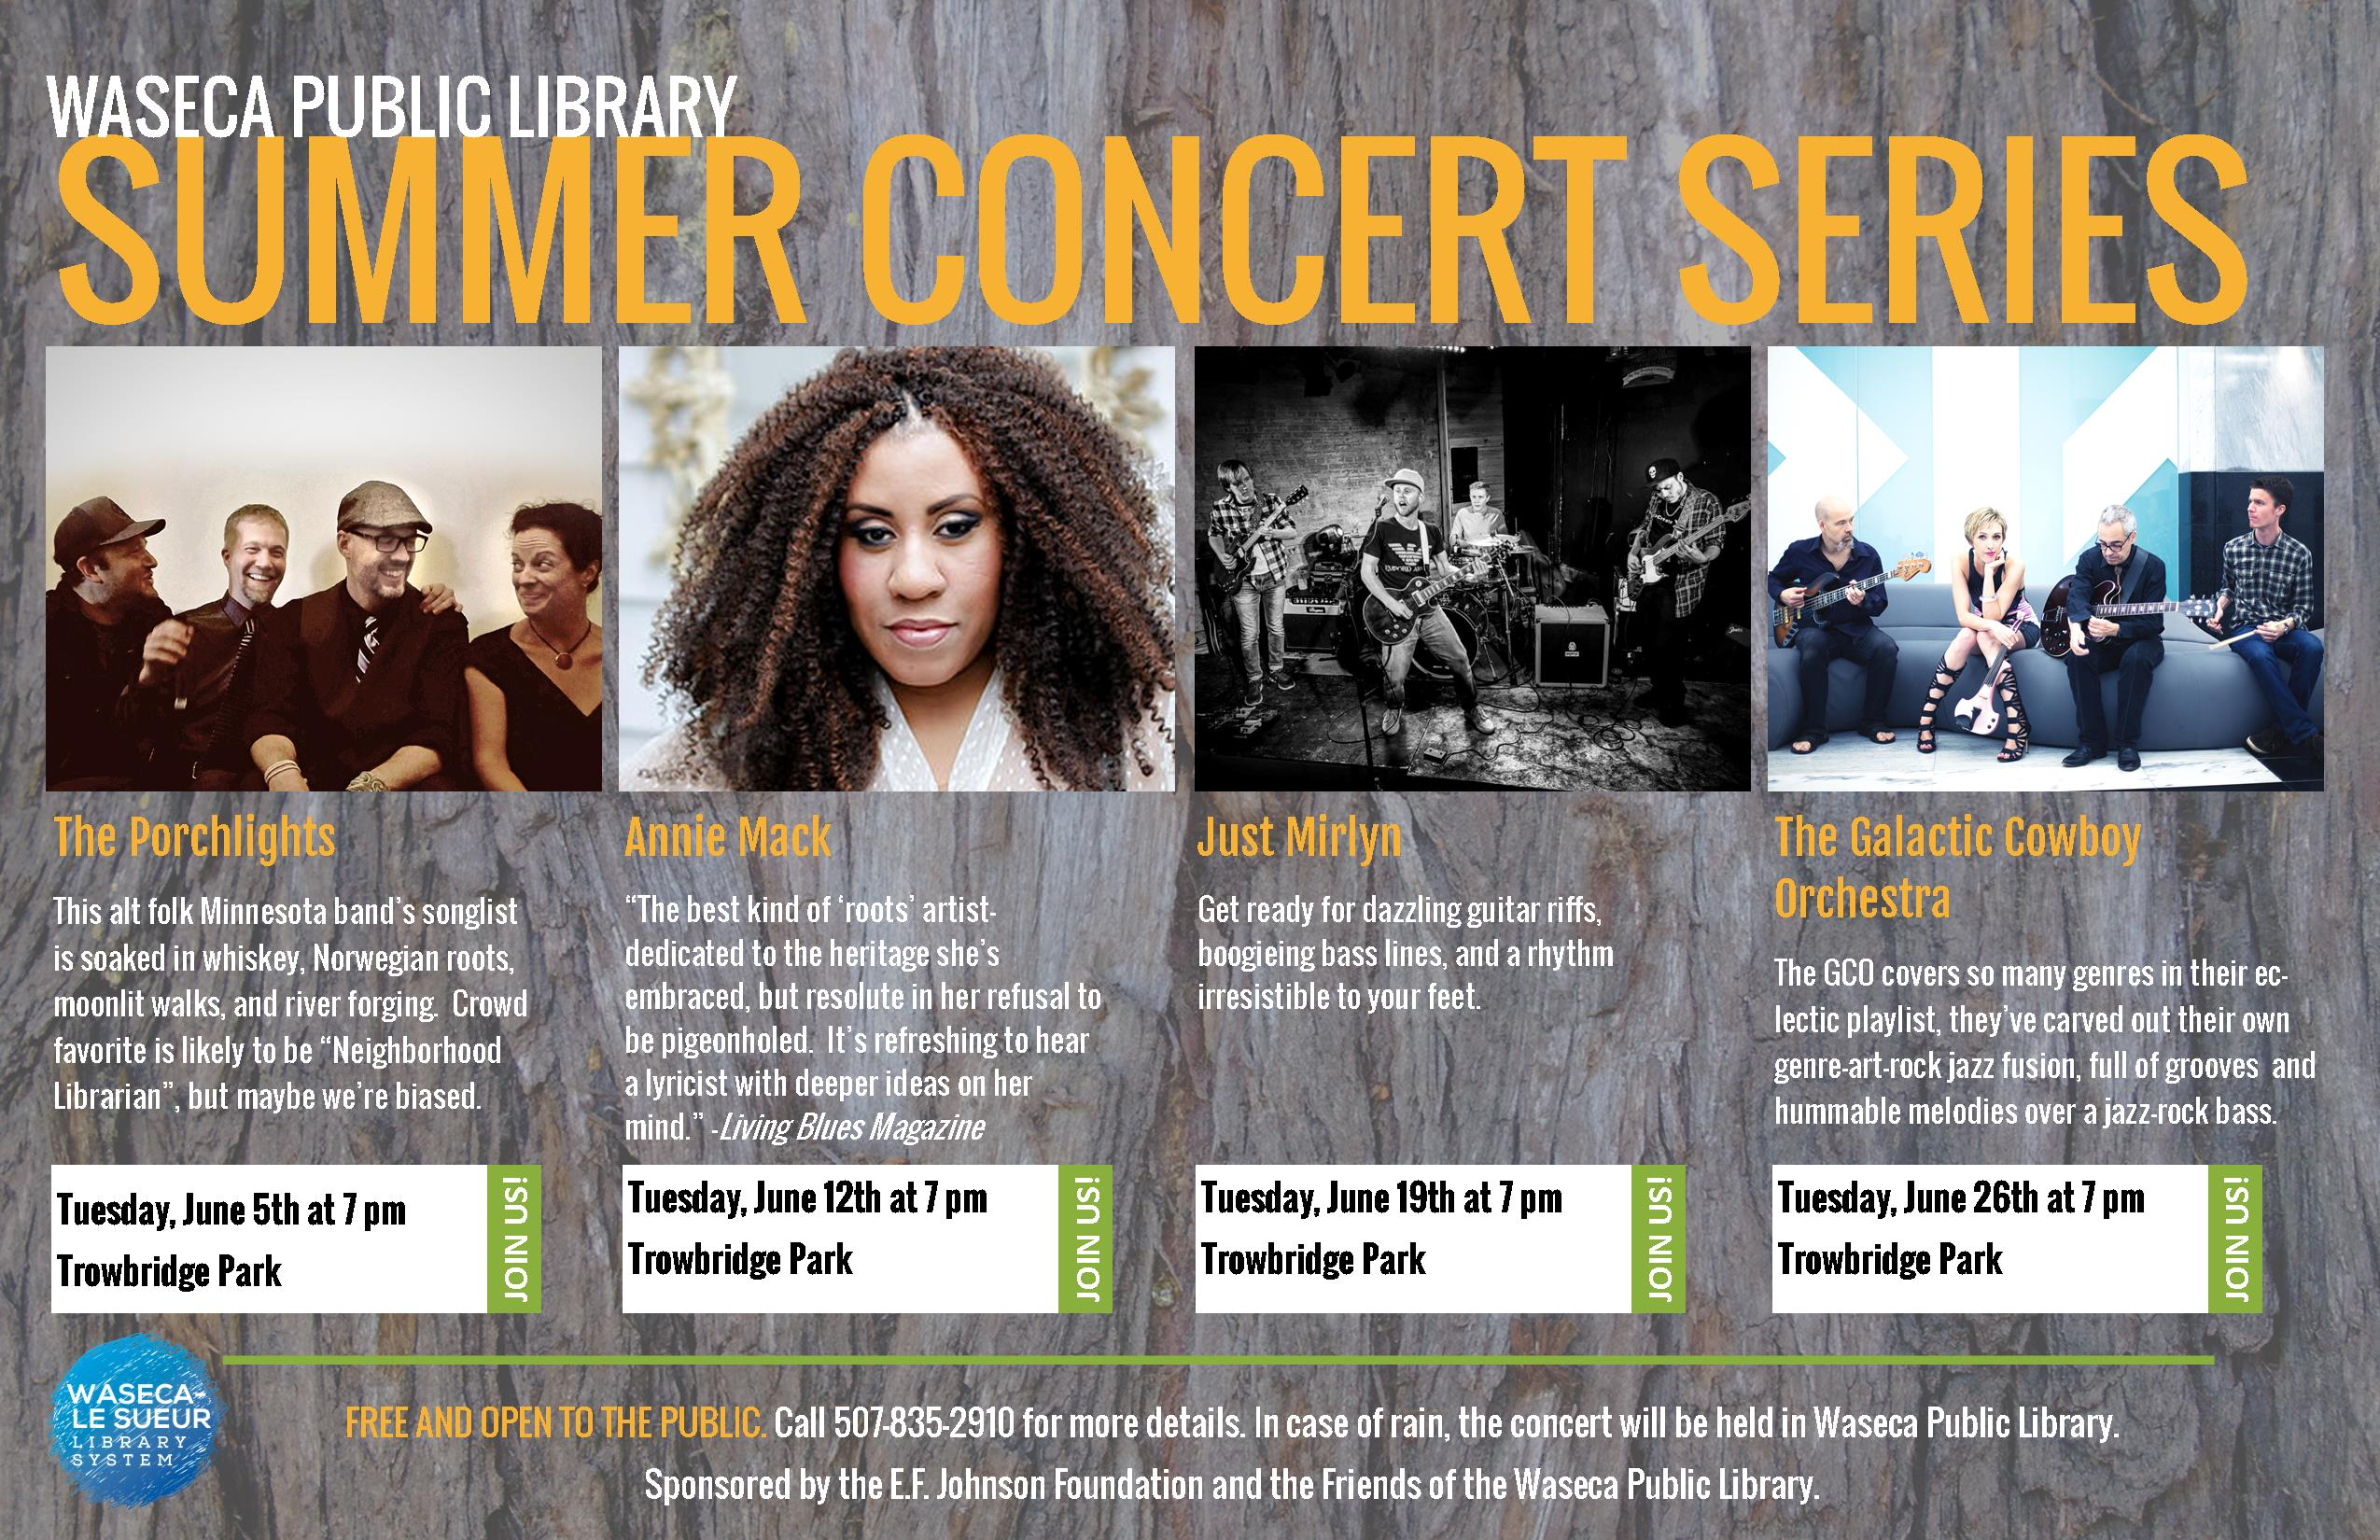 Announcing Waseca Public Library's Summer Concert Series!